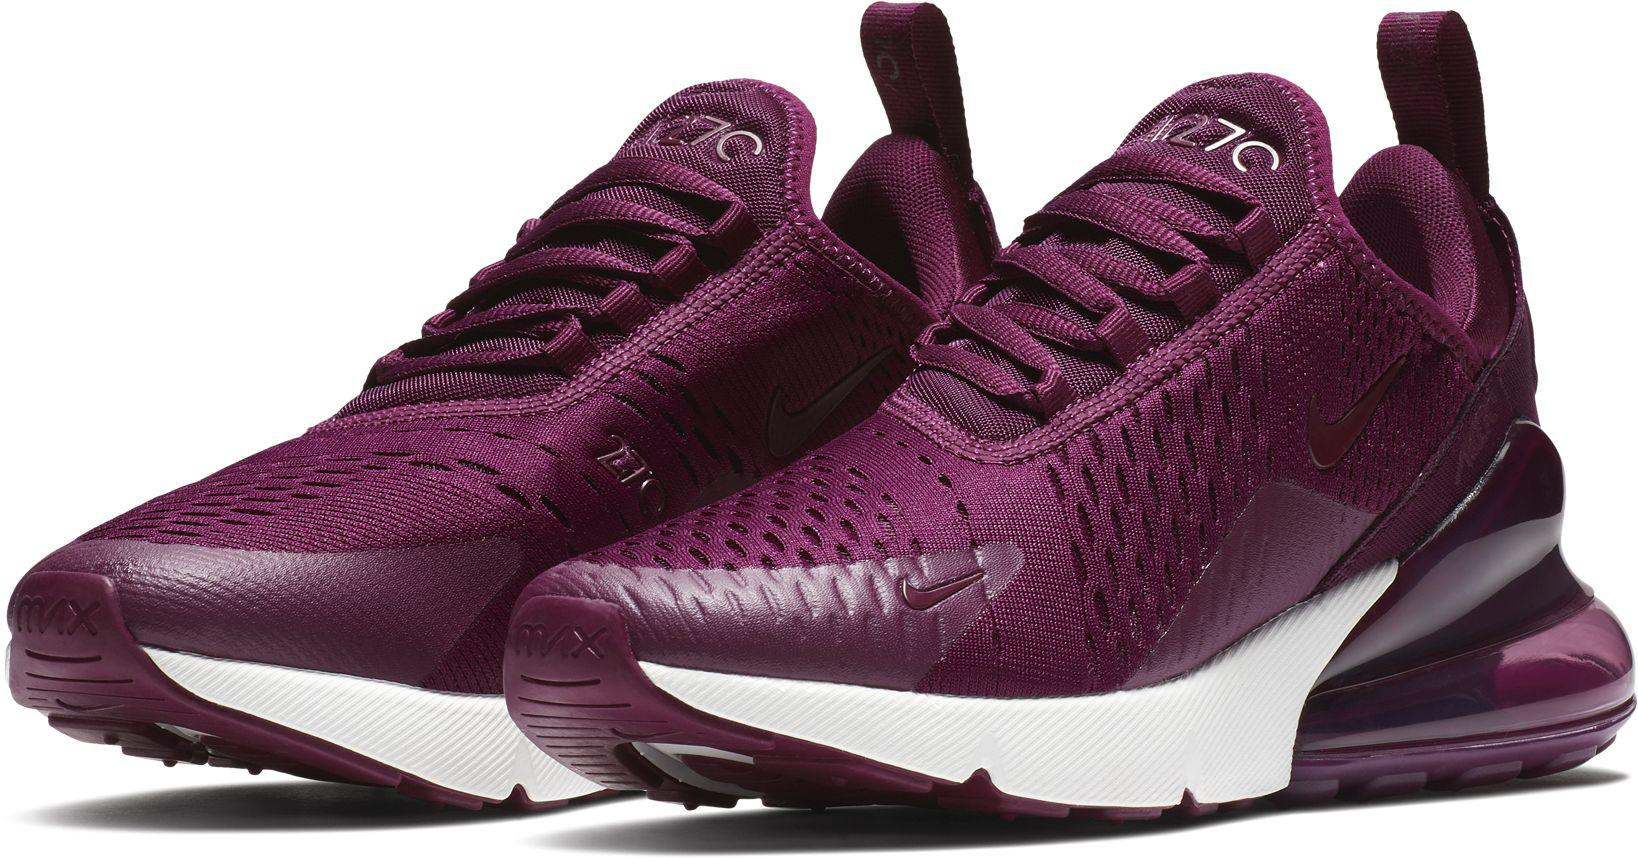 Nike Rubber Air Max 270 Shoes in